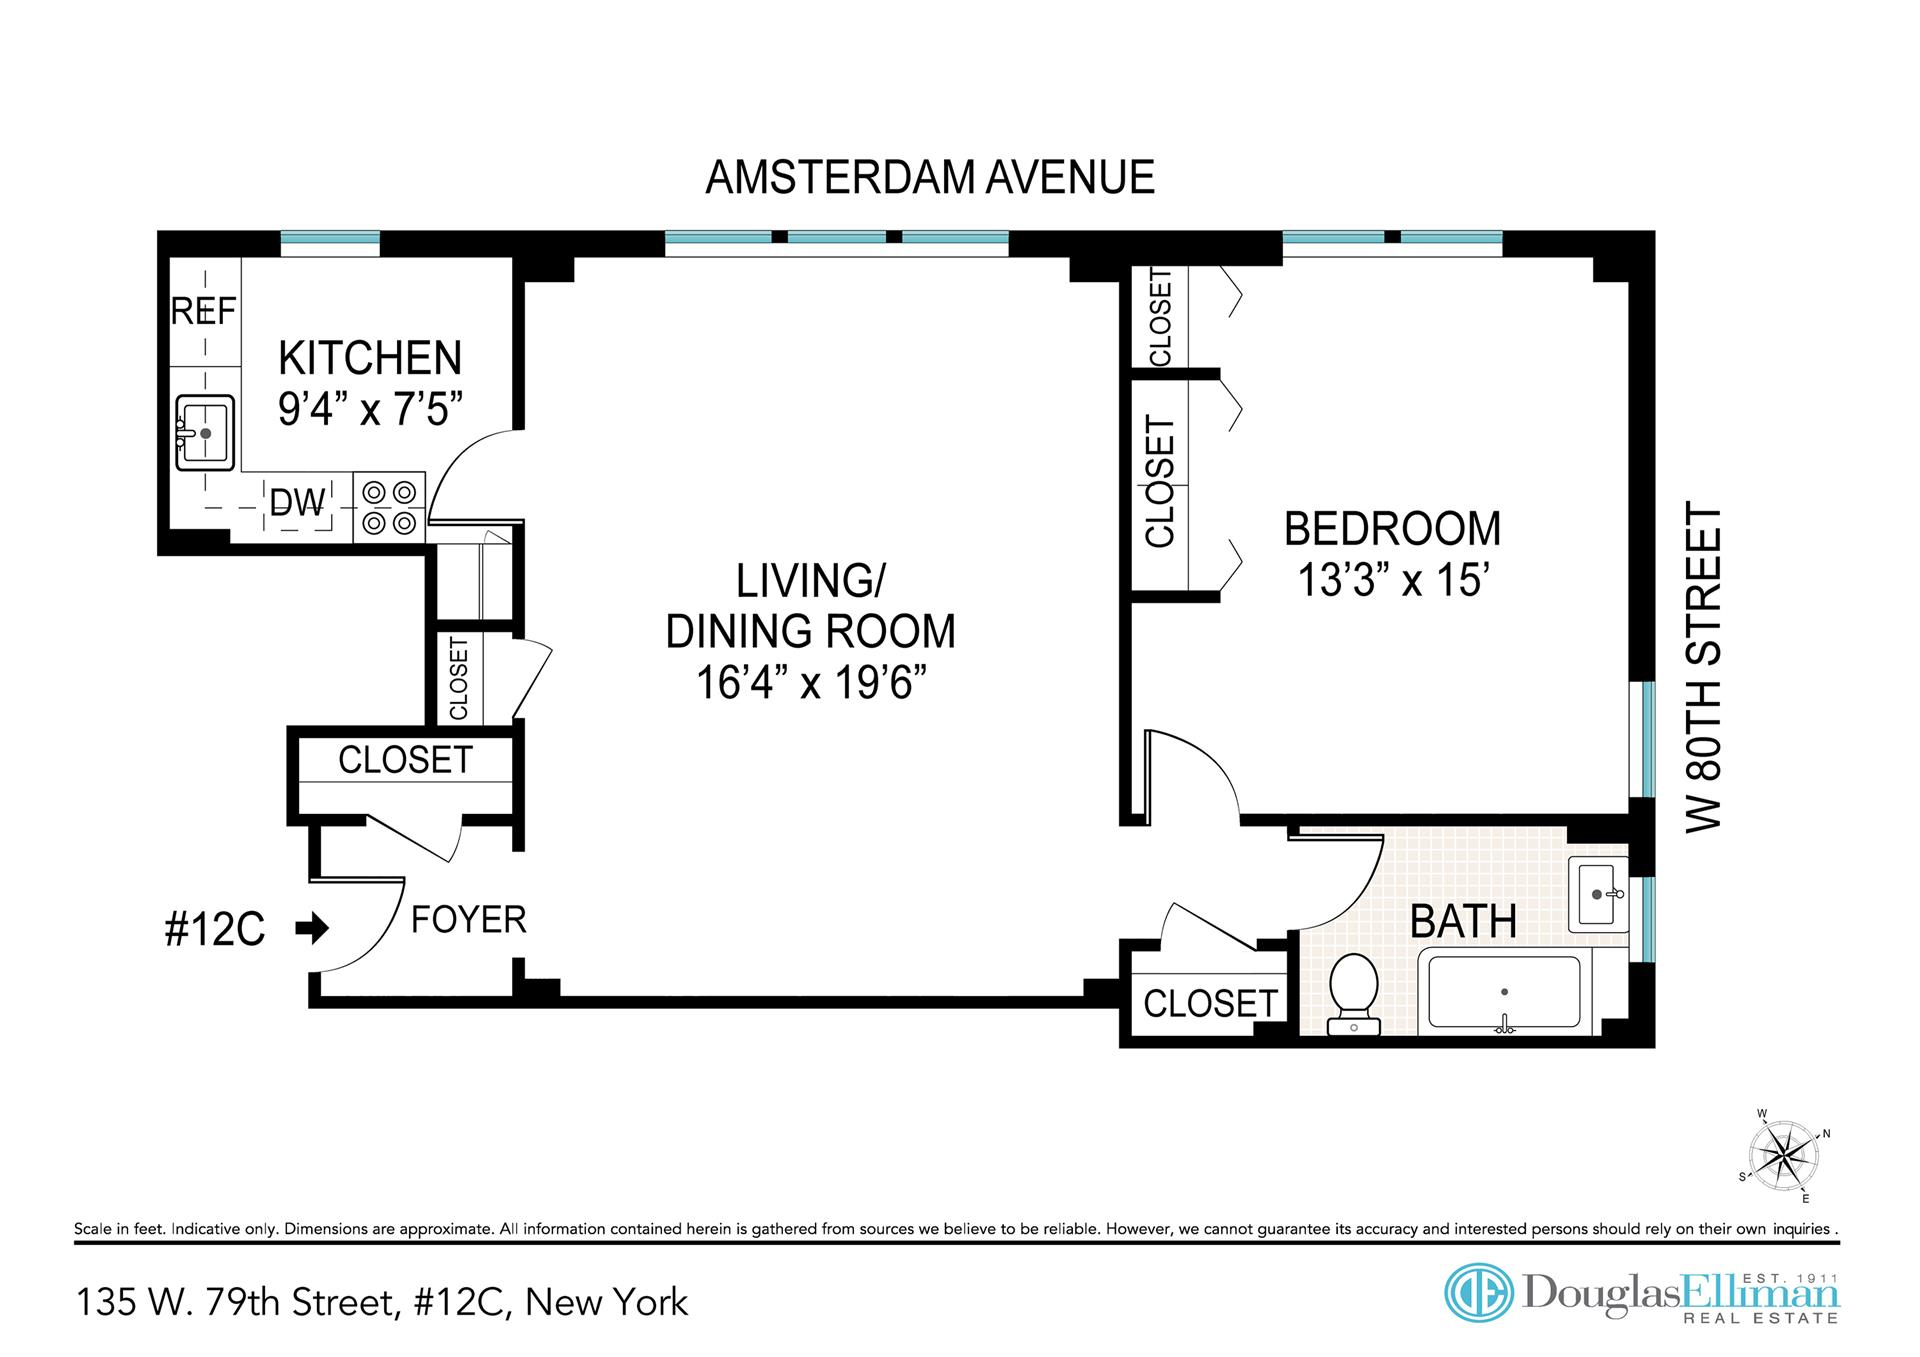 Floor plan of 135 West 79th St, 12C - Upper West Side, New York